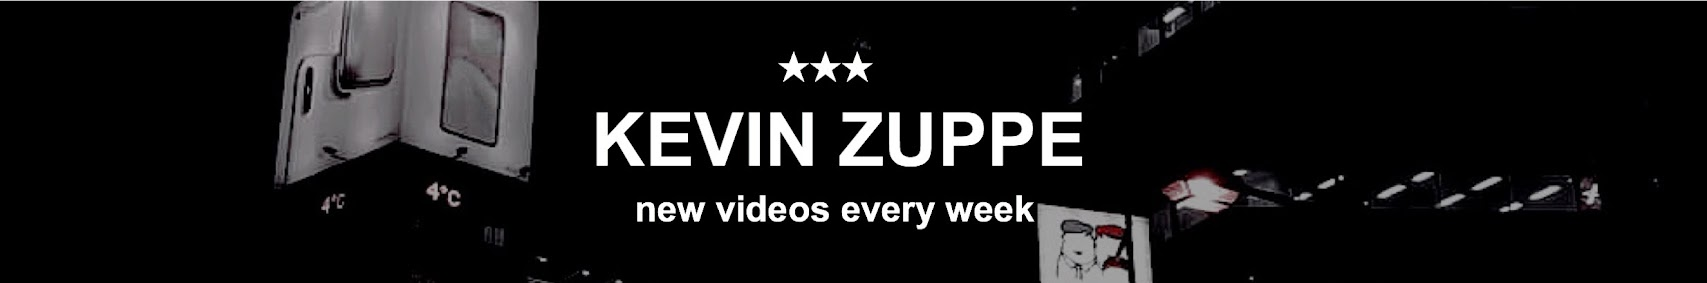 Kevin Zuppe